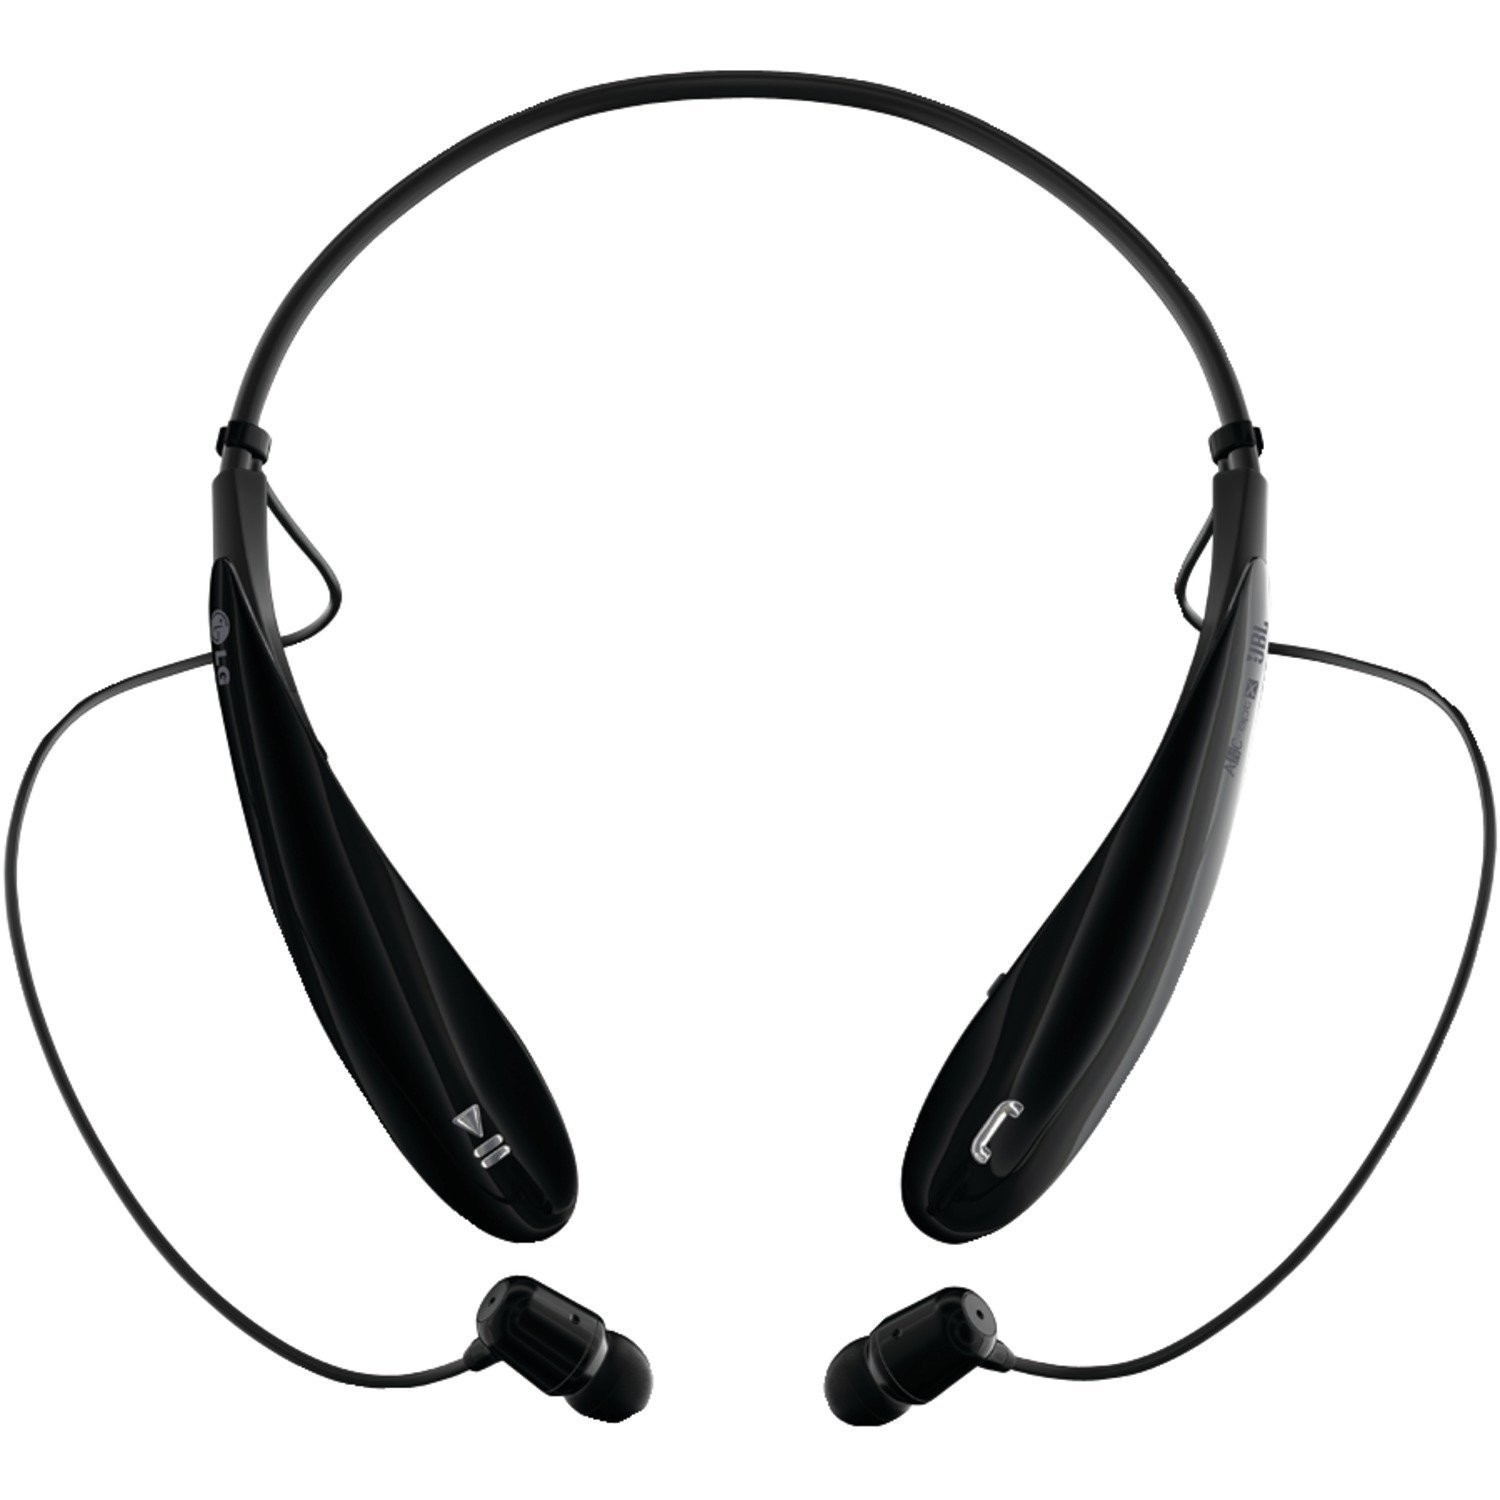 LG HBS-800 Tone Ultra Bluetooth Noise Cancelling Headset - Black